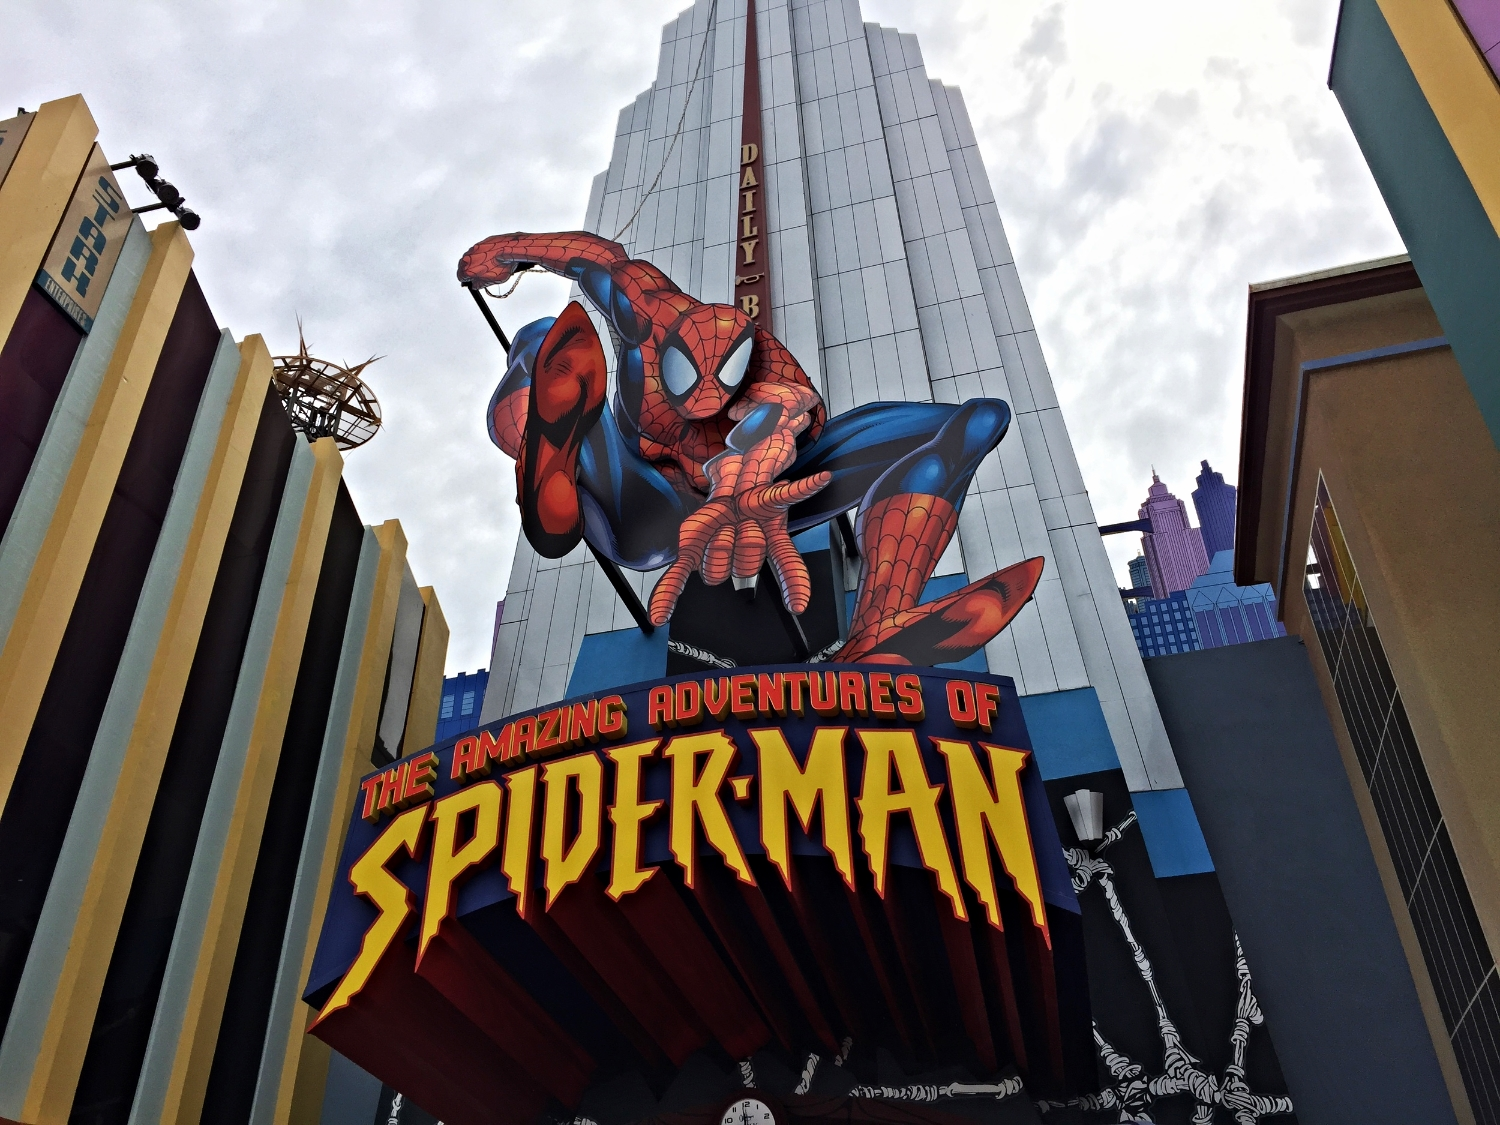 Read about The Amazing Adventures of Spider-Man, a Marvel Superhero Island ride in Islands of Adventure.